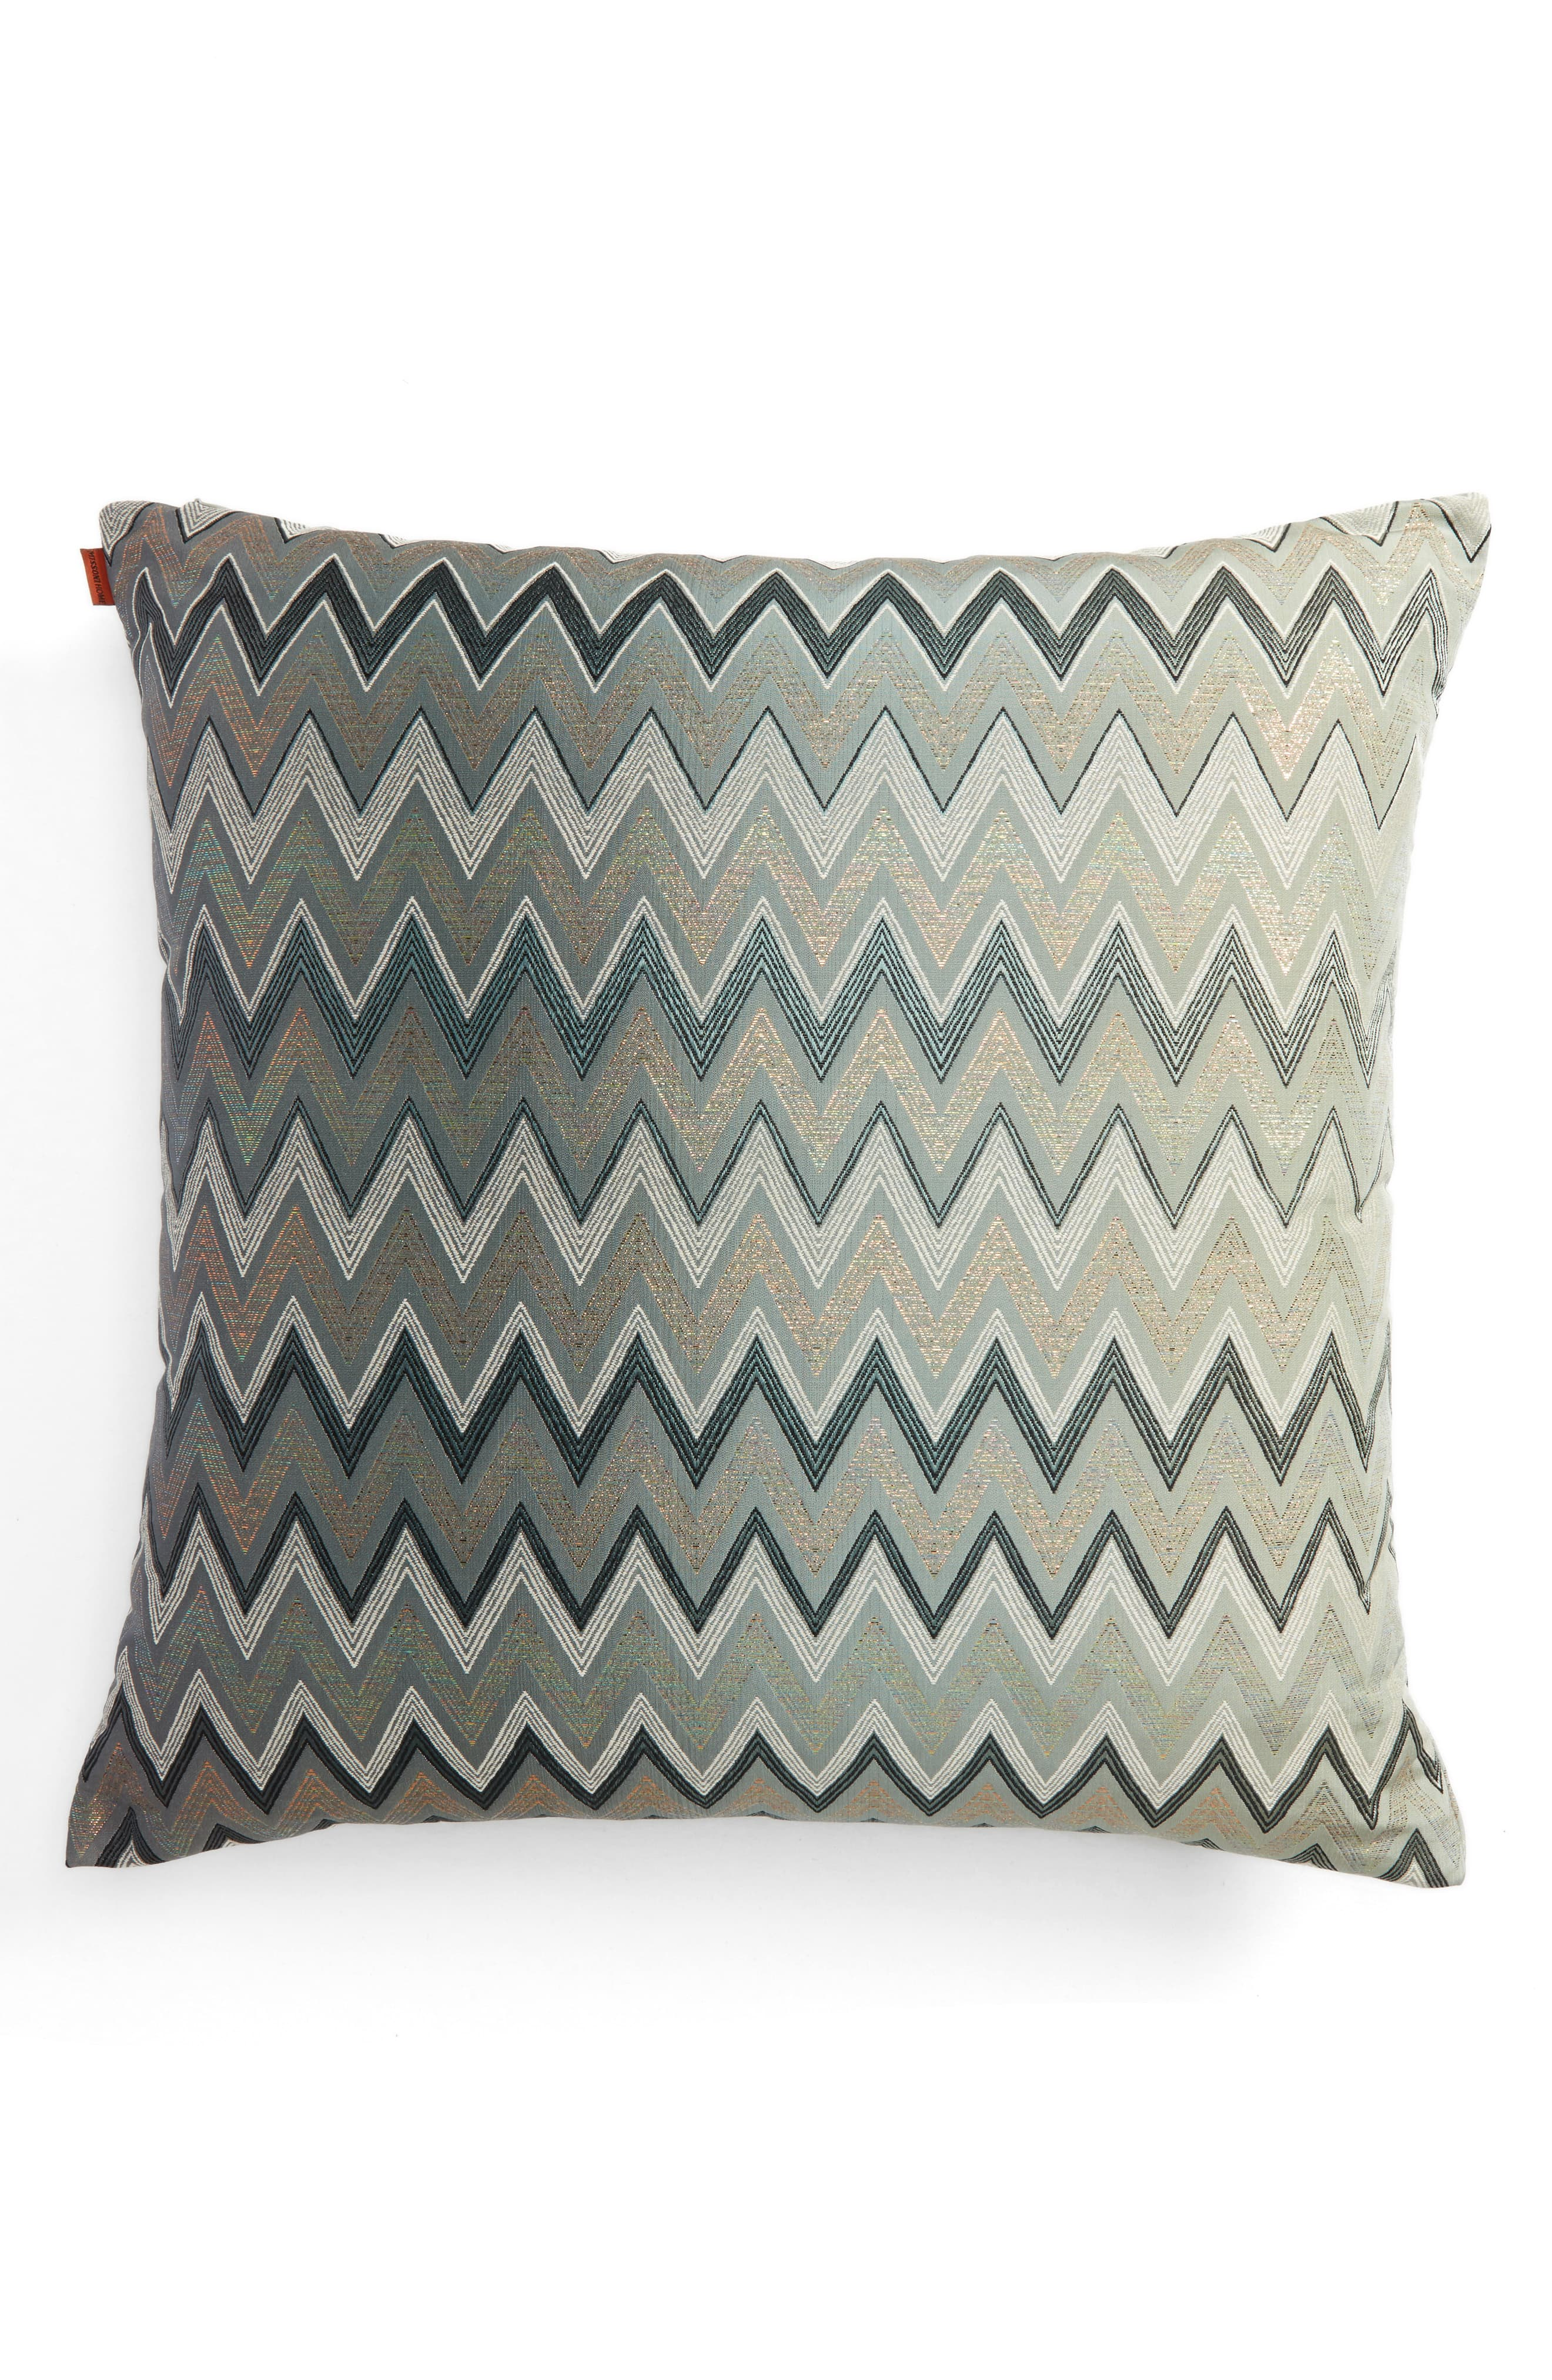 Missoni Taipei Accent Pillow Pillows Accent Pillows Throw Pillows